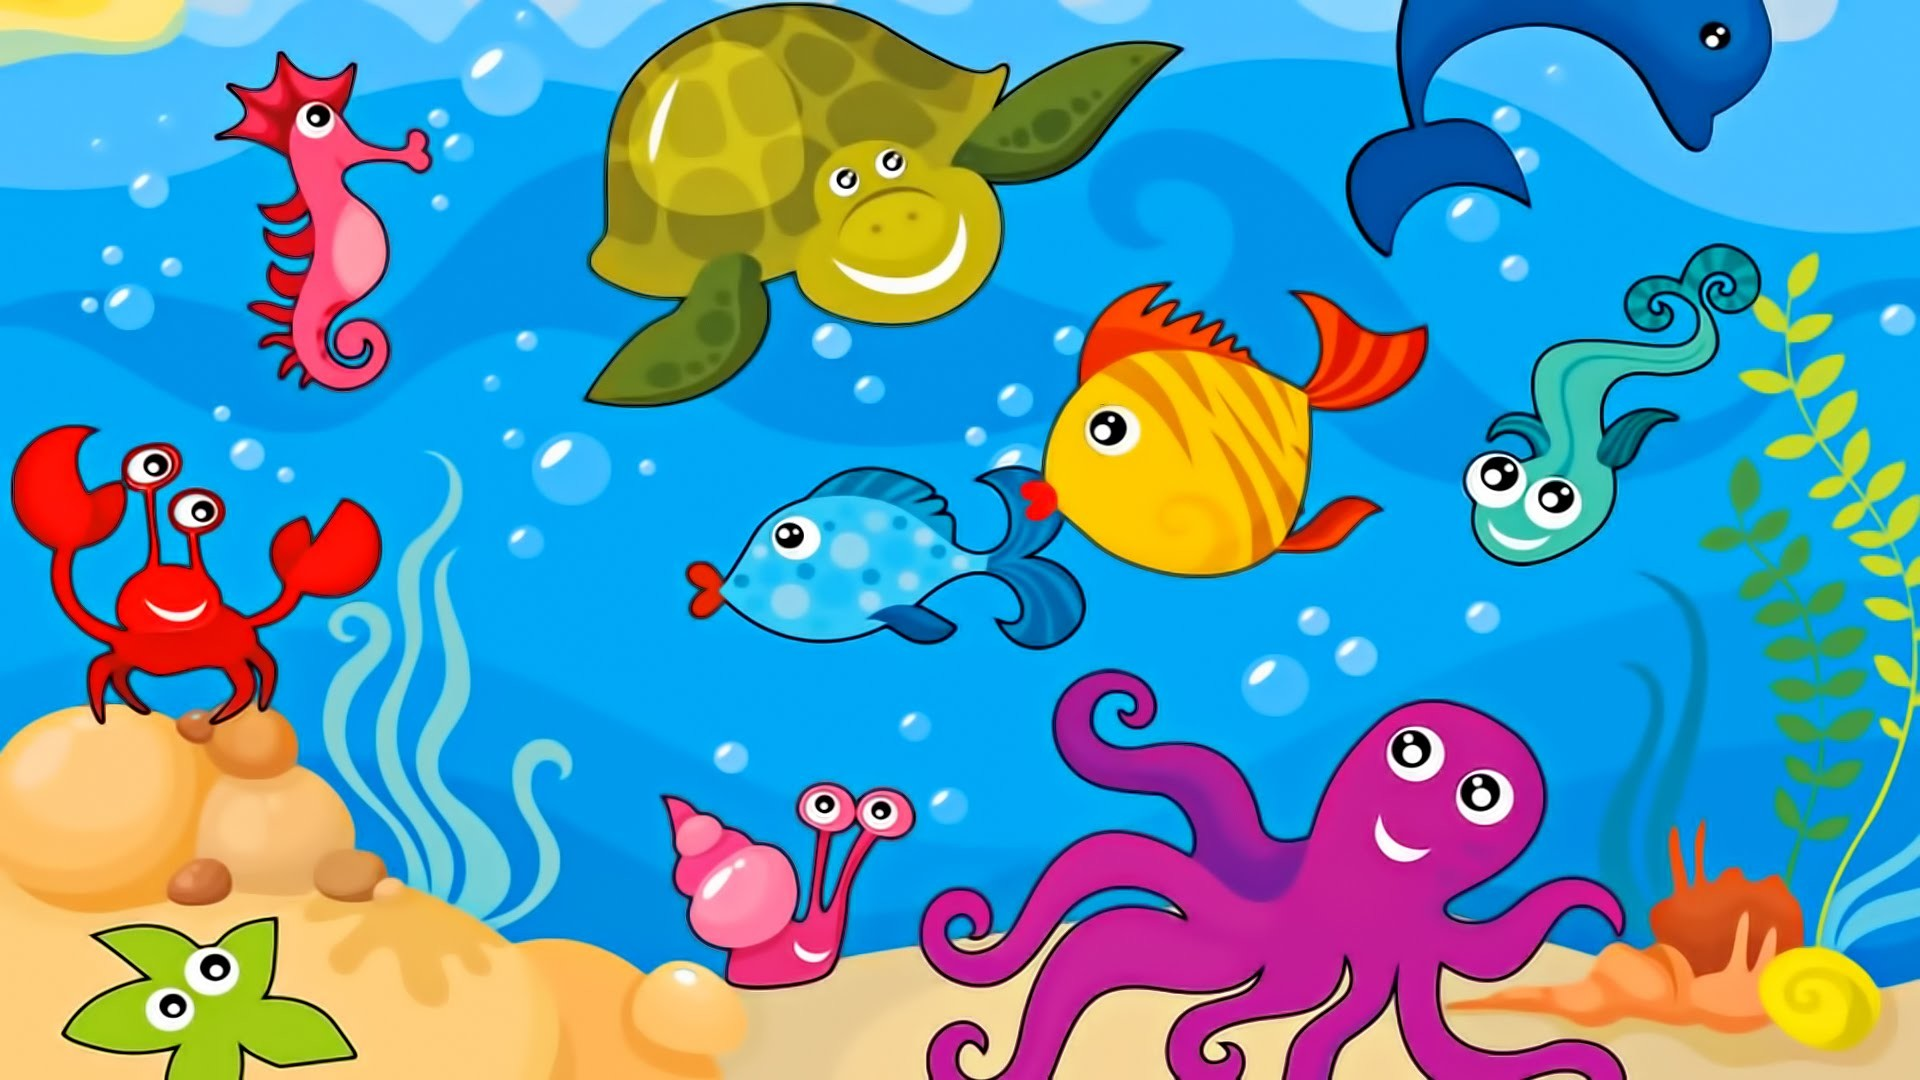 Res: 1920x1080, Perspective Sea Creatures For Kids Pictures Unicorn Pics To Color 6712